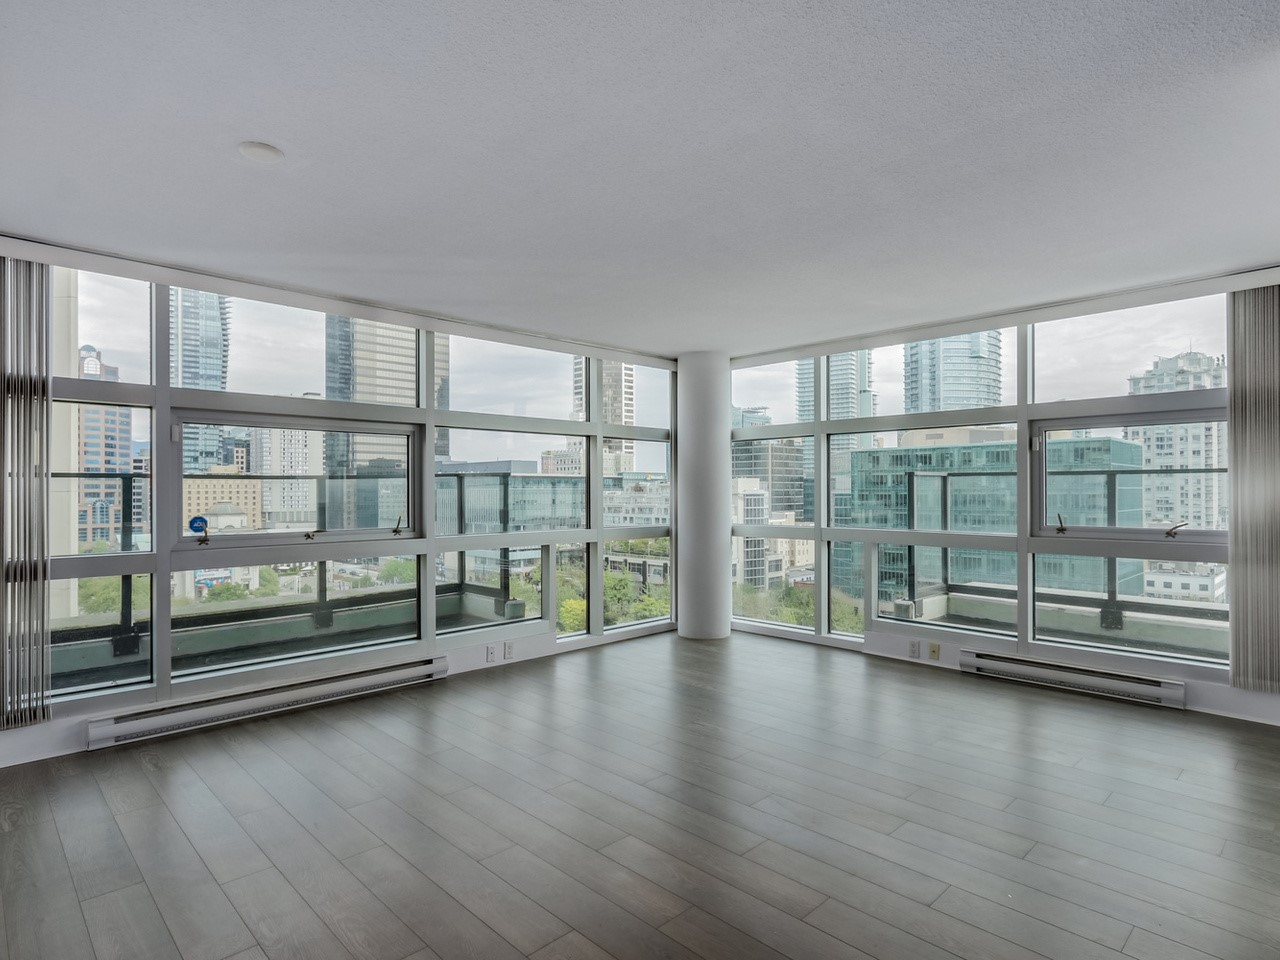 Vancouver investment property property sale news Floor to ceiling windows for sale